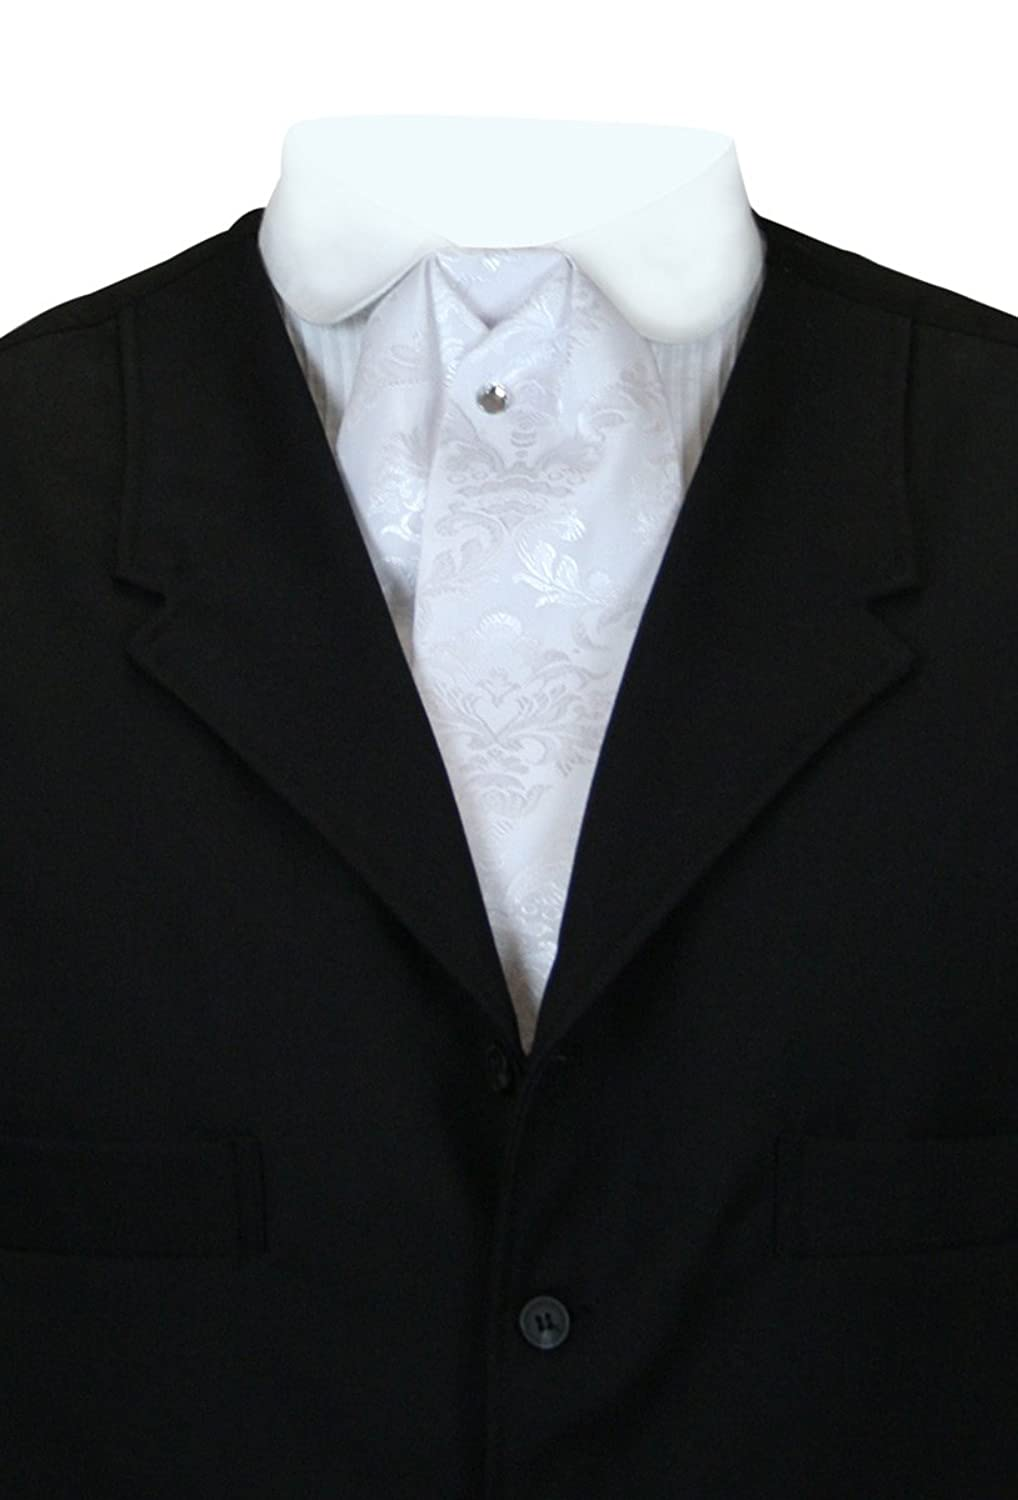 Edwardian Titanic Mens Formal Suit Guide Historical Emporium Mens Satin Floral Puff Tie $25.95 AT vintagedancer.com